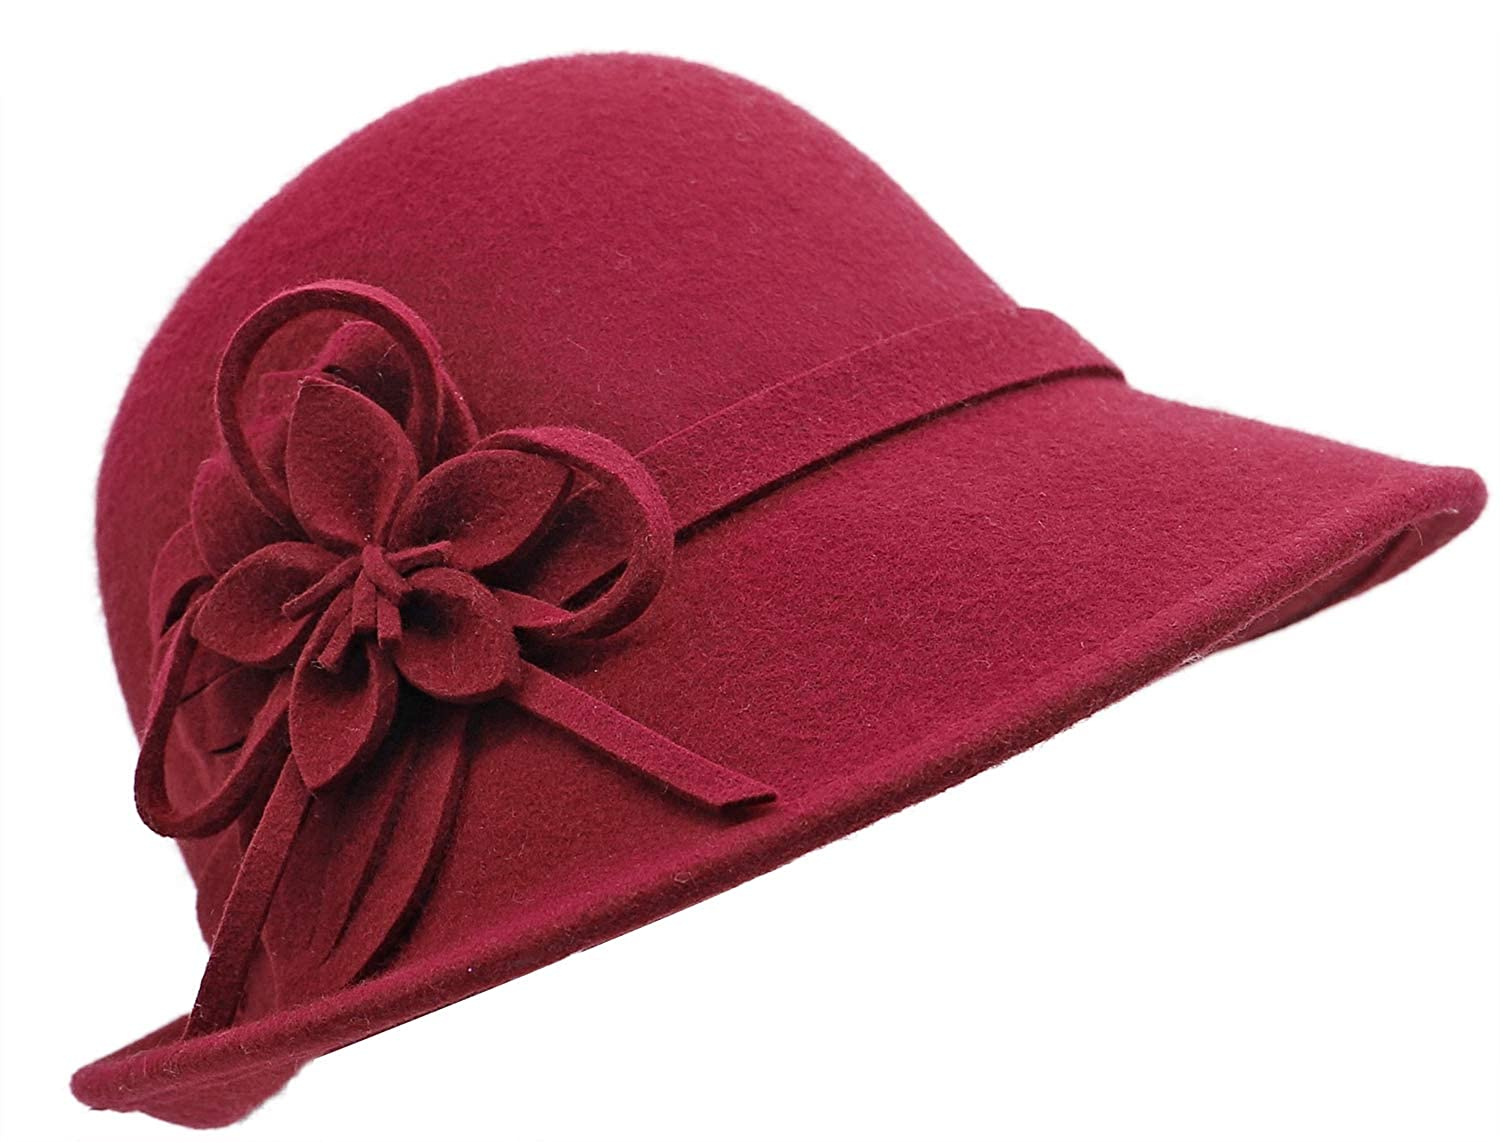 1920s Style Hats Bellady Women Solid Color Winter Hat 100% Wool Cloche Bucket with Bow Accent $21.99 AT vintagedancer.com